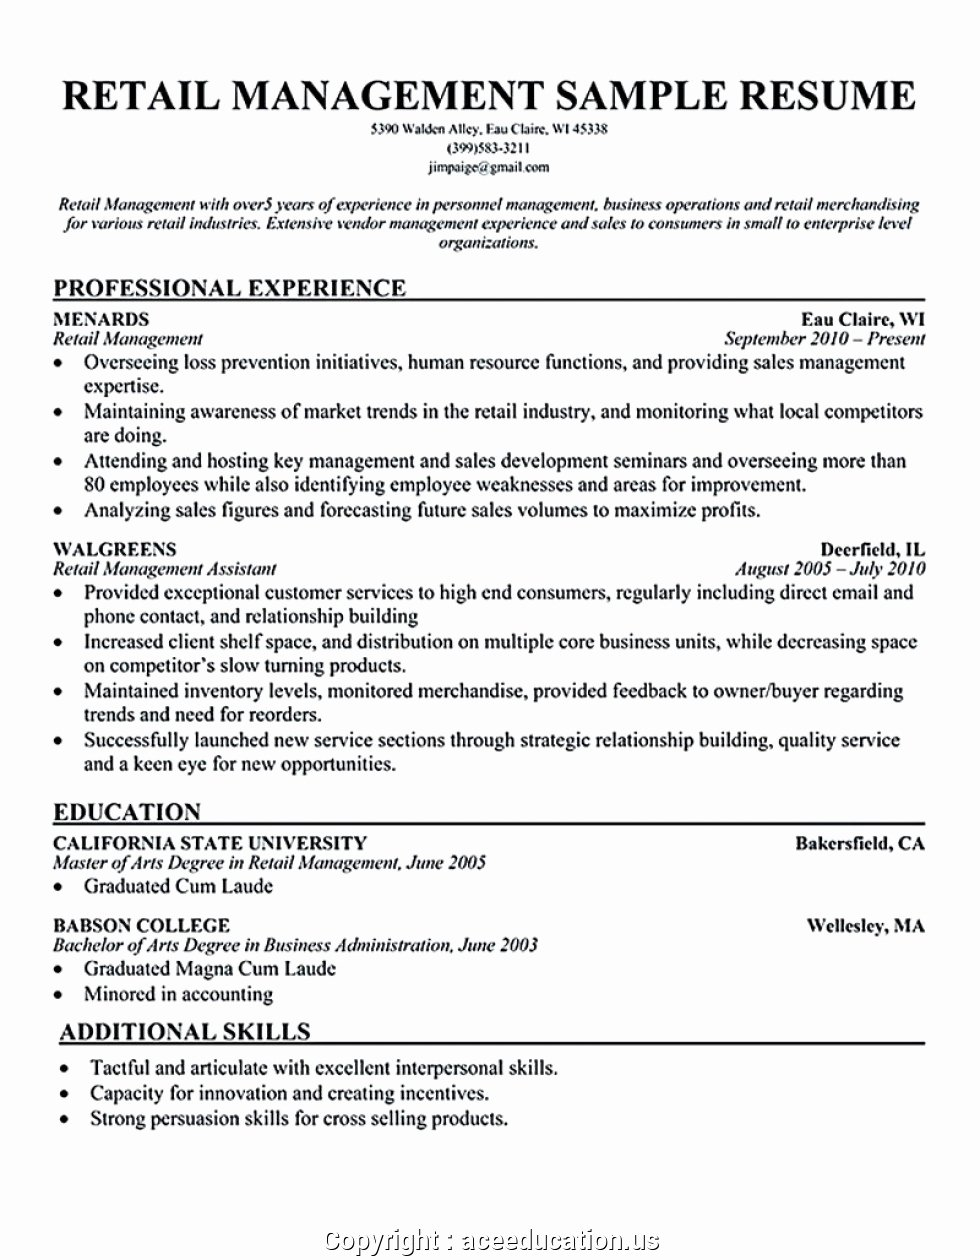 Retail Store Manager Resume Luxury Creative Clothing Store Manager Resume Example Resume